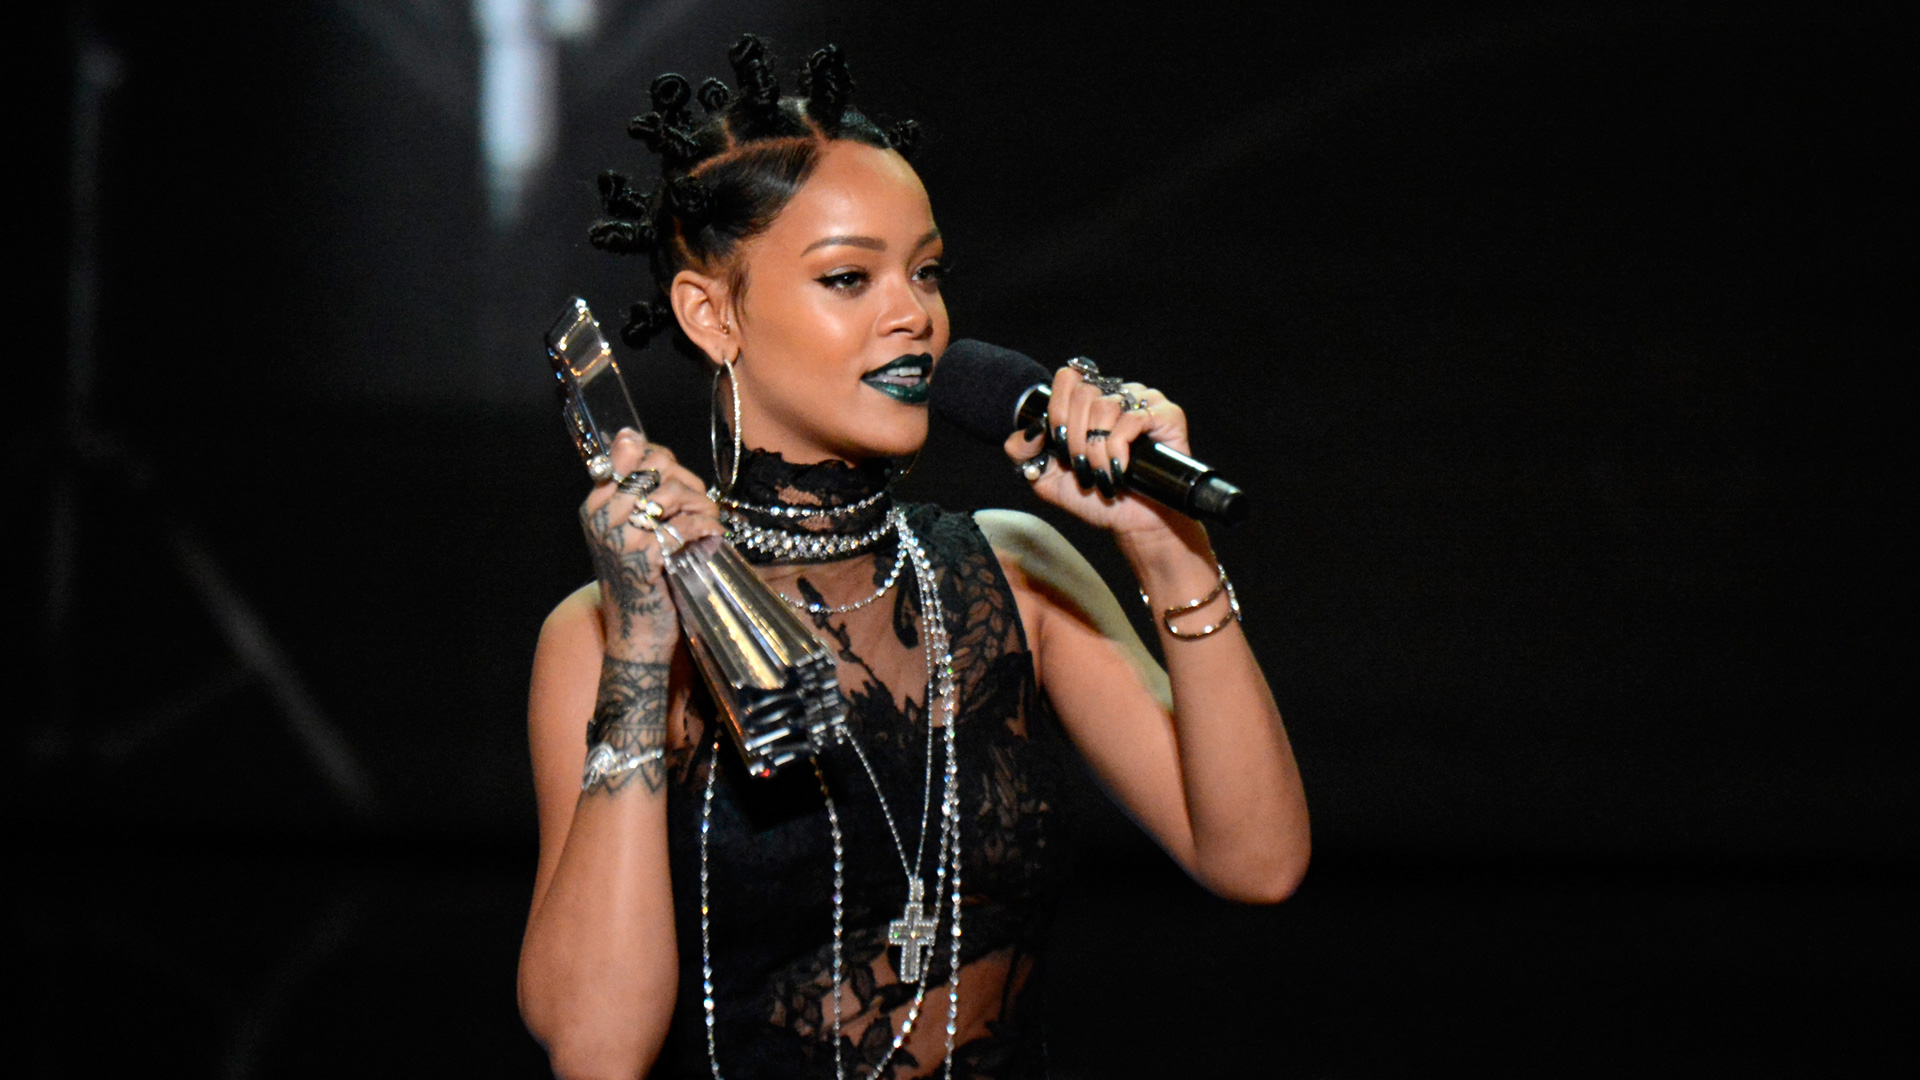 Rihanna at the 2014 iHeartRadio Music Awards